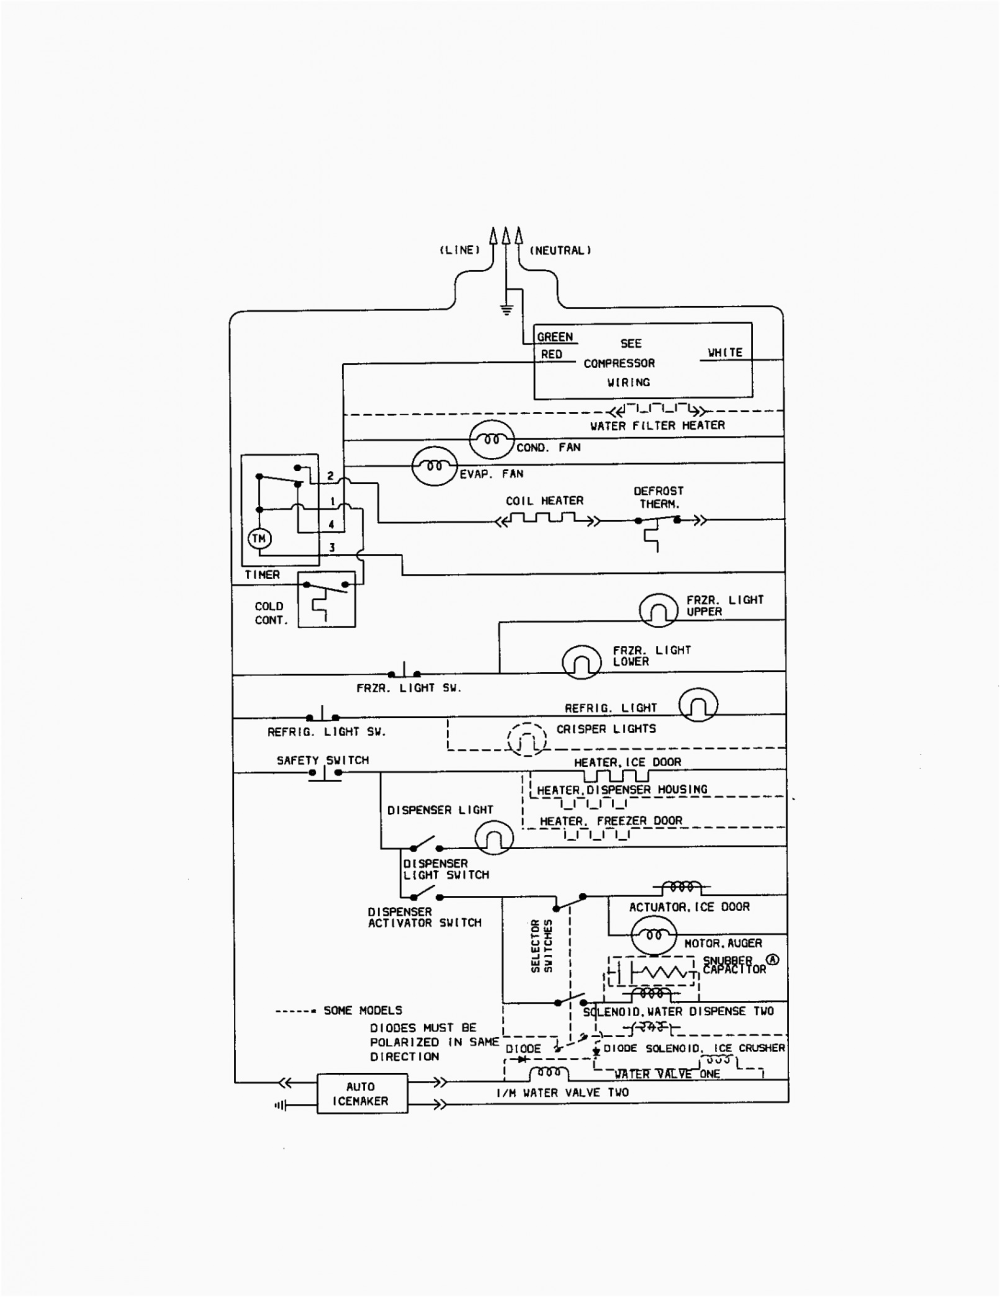 medium resolution of kenmore refrigerator wiring schematic sea breeze diagram kenmore refrigerator wiring diagram for amazing and